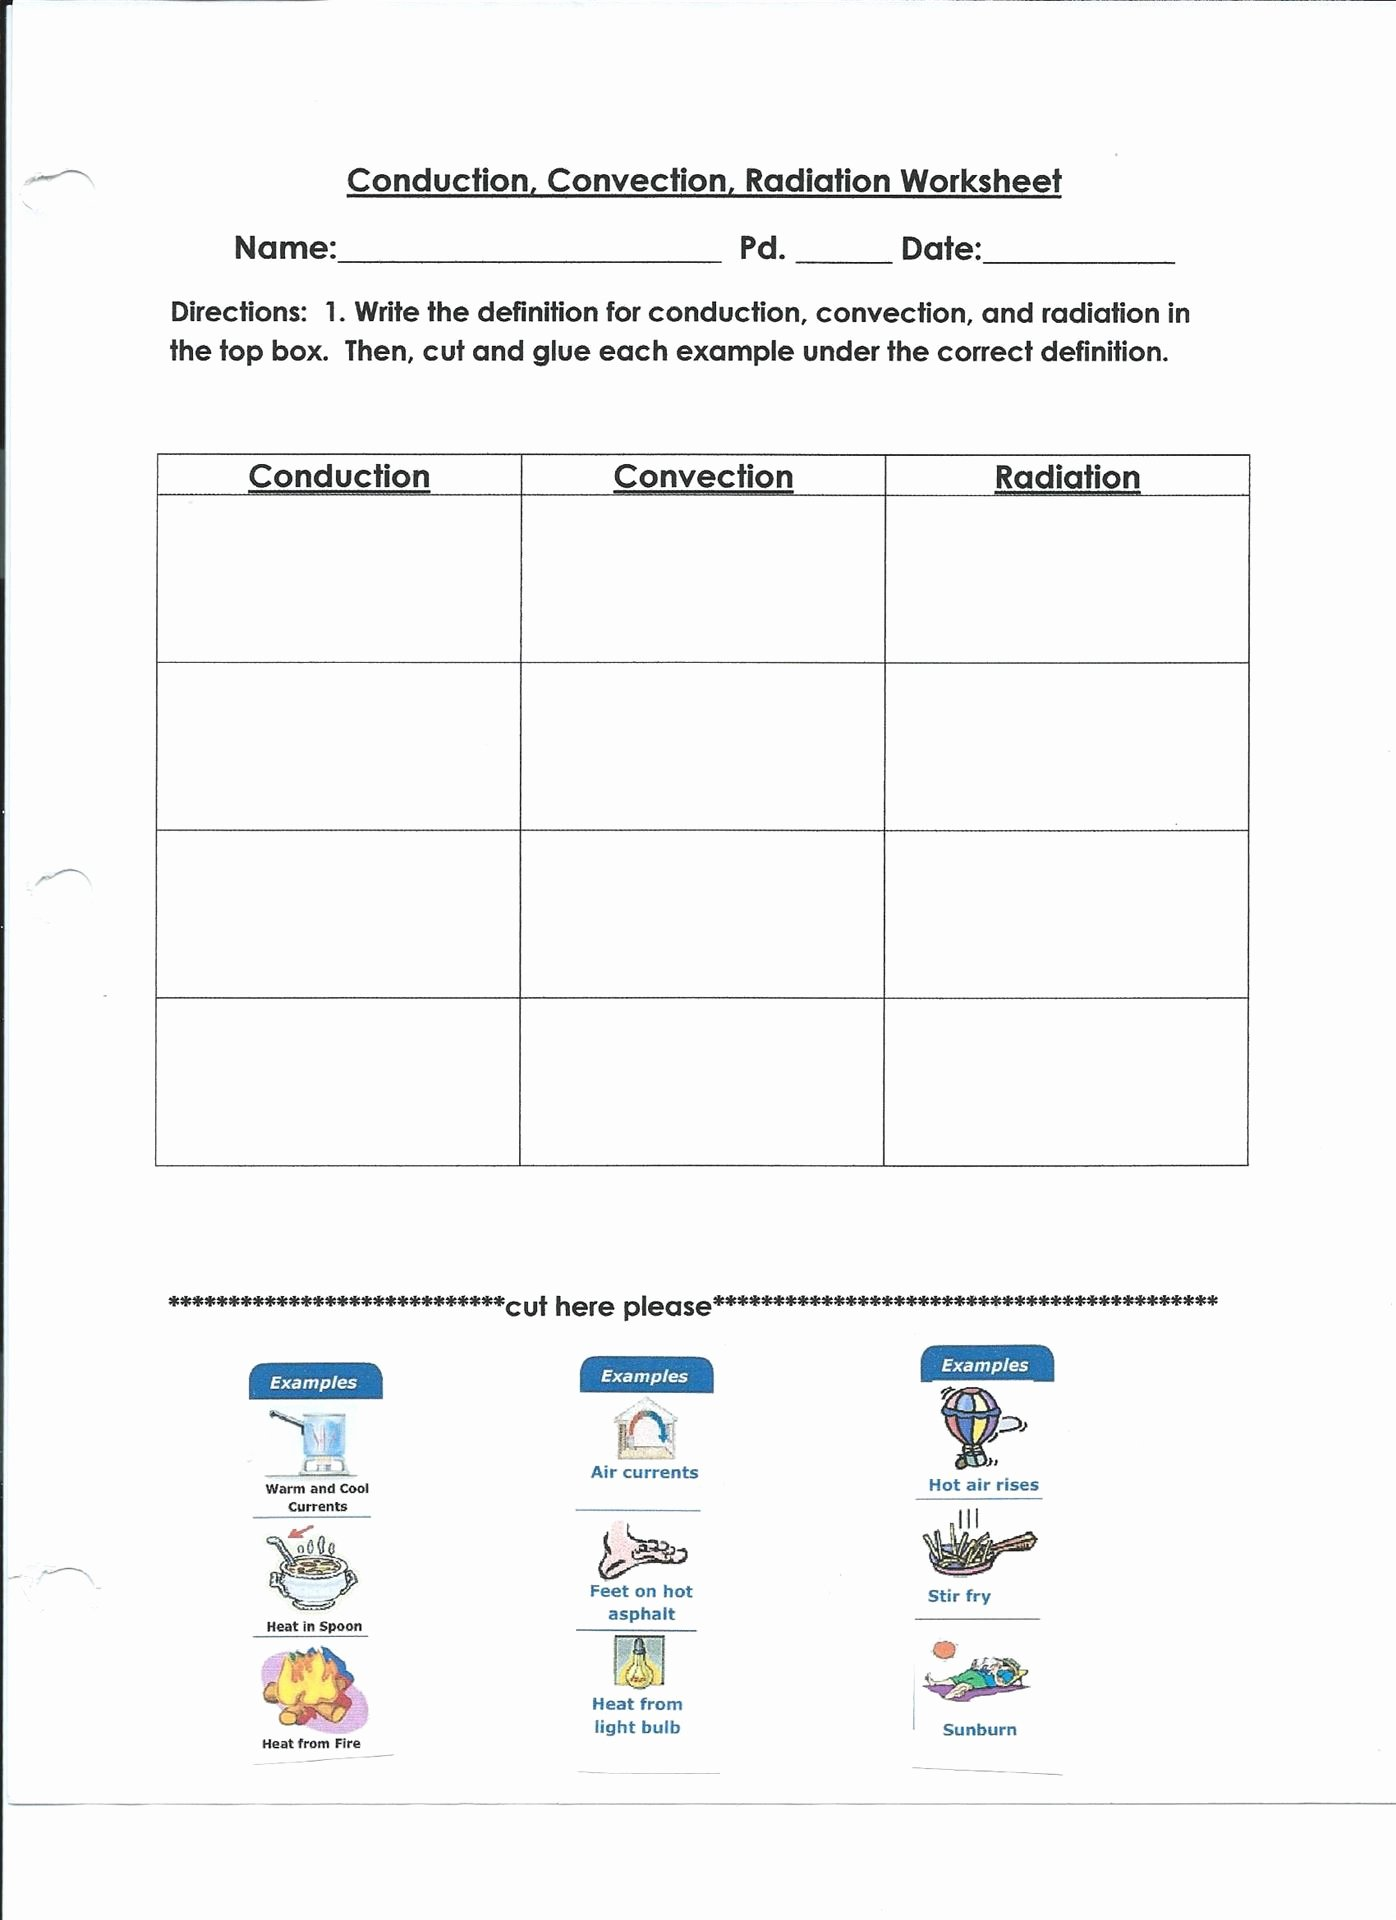 Conduction Convection Radiation Worksheet Fresh Convection Radiation Conduction Worksheet Inspiracao